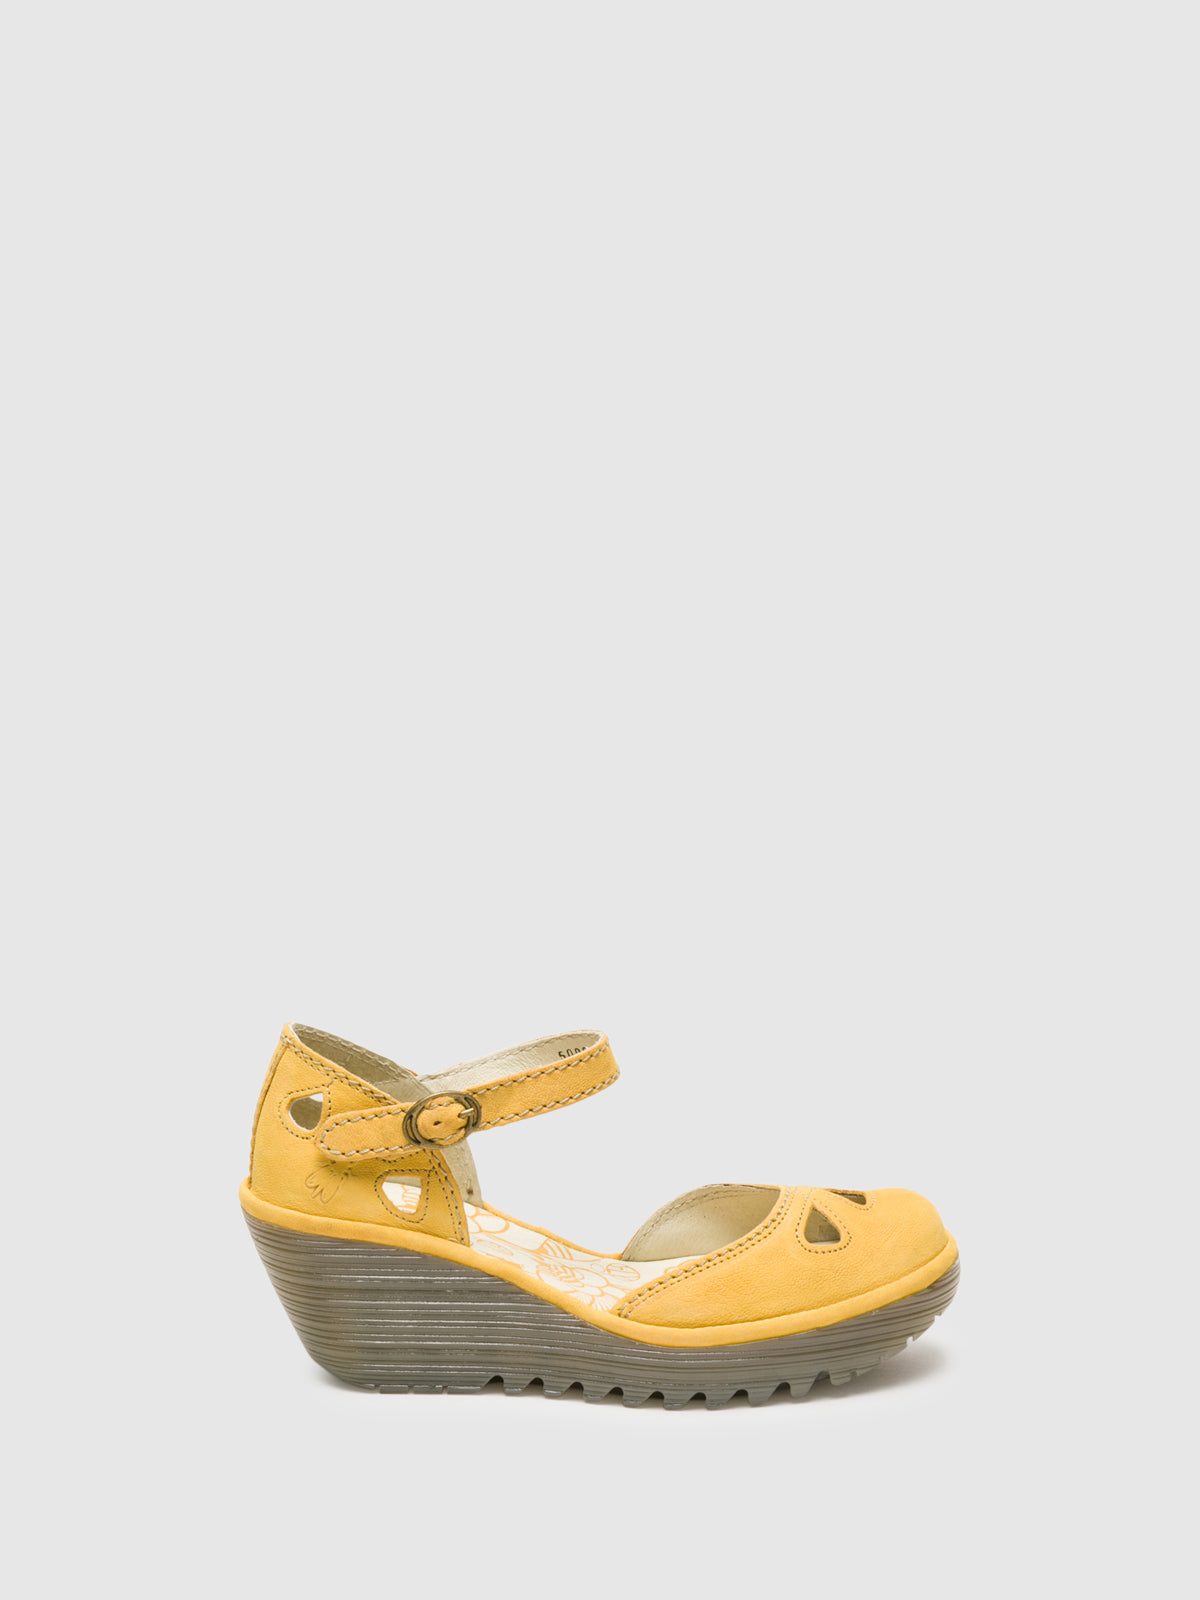 Fly London LightYellow Buckle Sandals